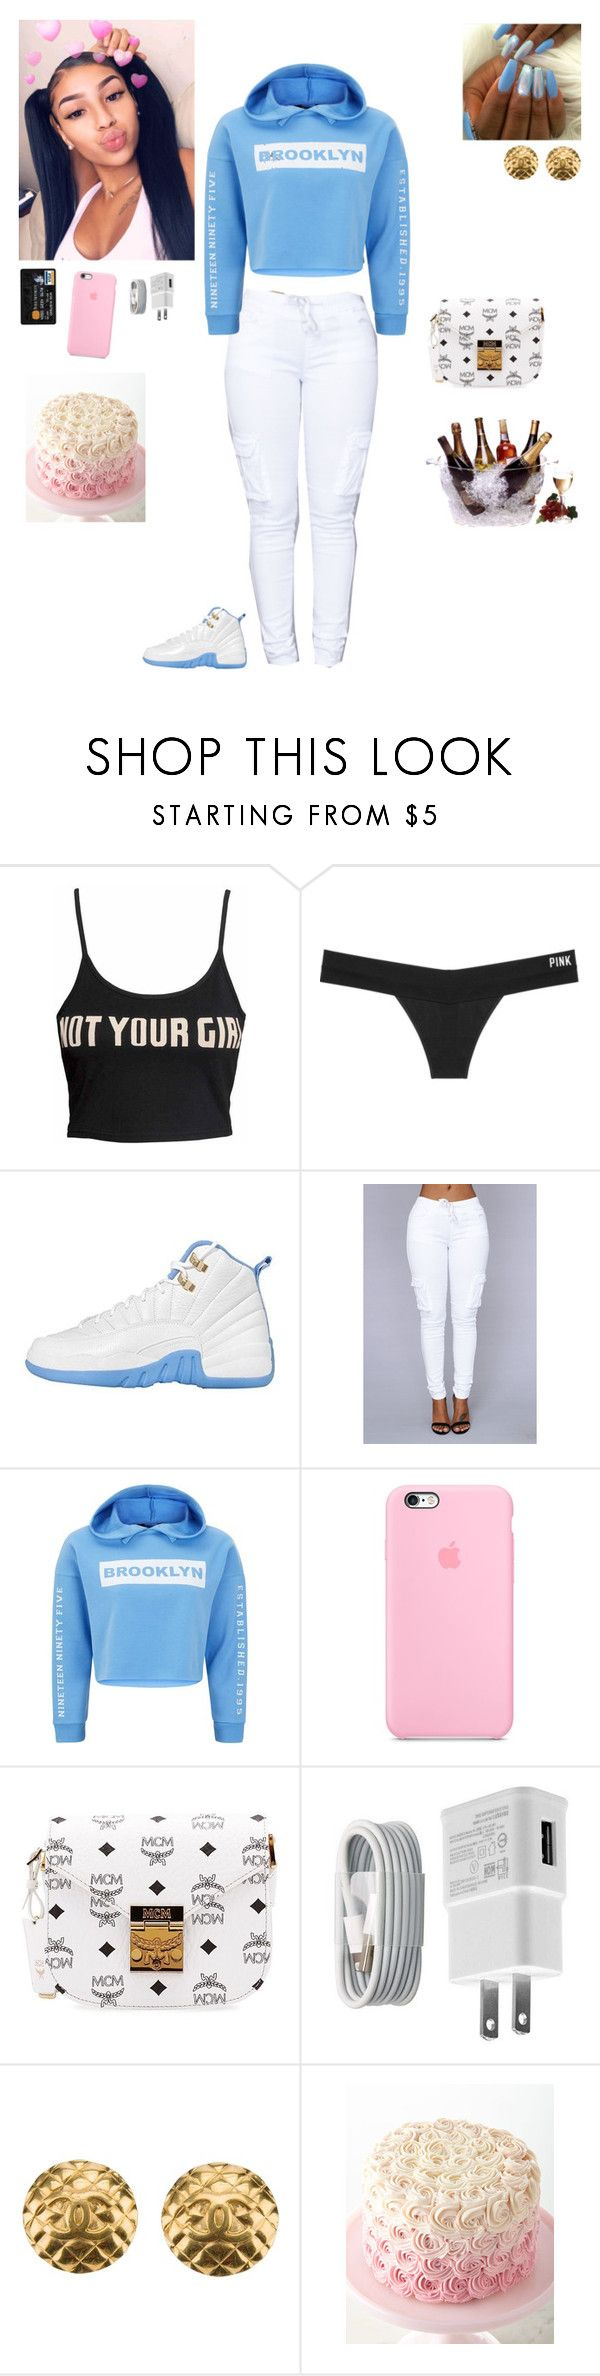 """"" by kristinabone ❤ liked on Polyvore featuring Victoria's Secret, New Look, MCM, WALL, Chanel and Prodyne"